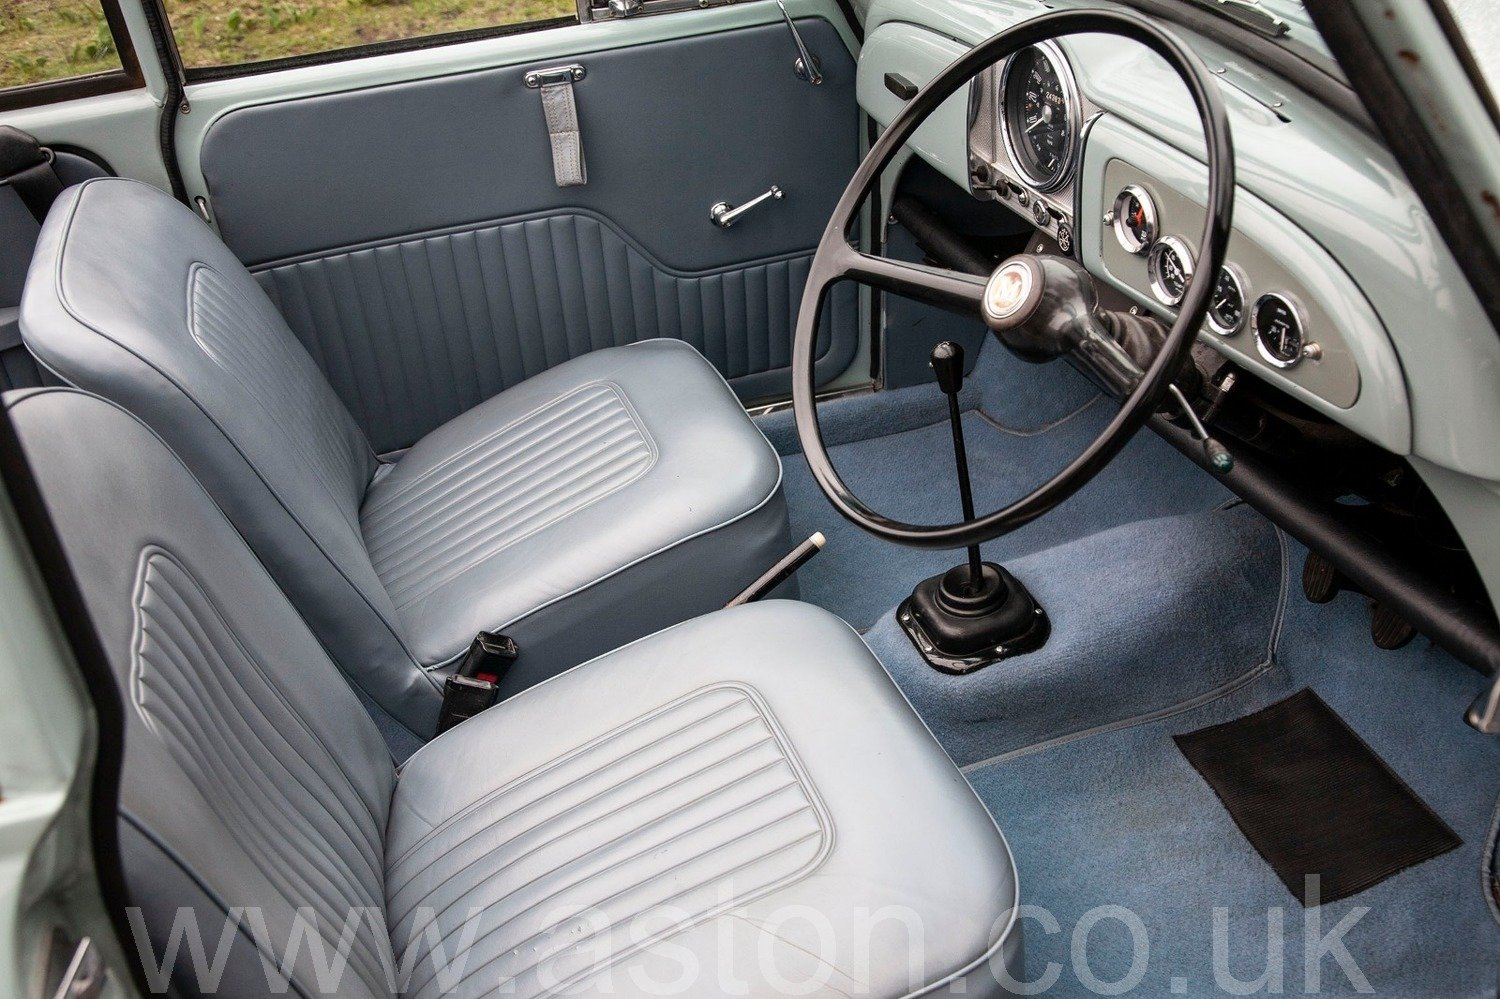 1969 Morris Minor 1000 Convertible For Sale (picture 3 of 6)